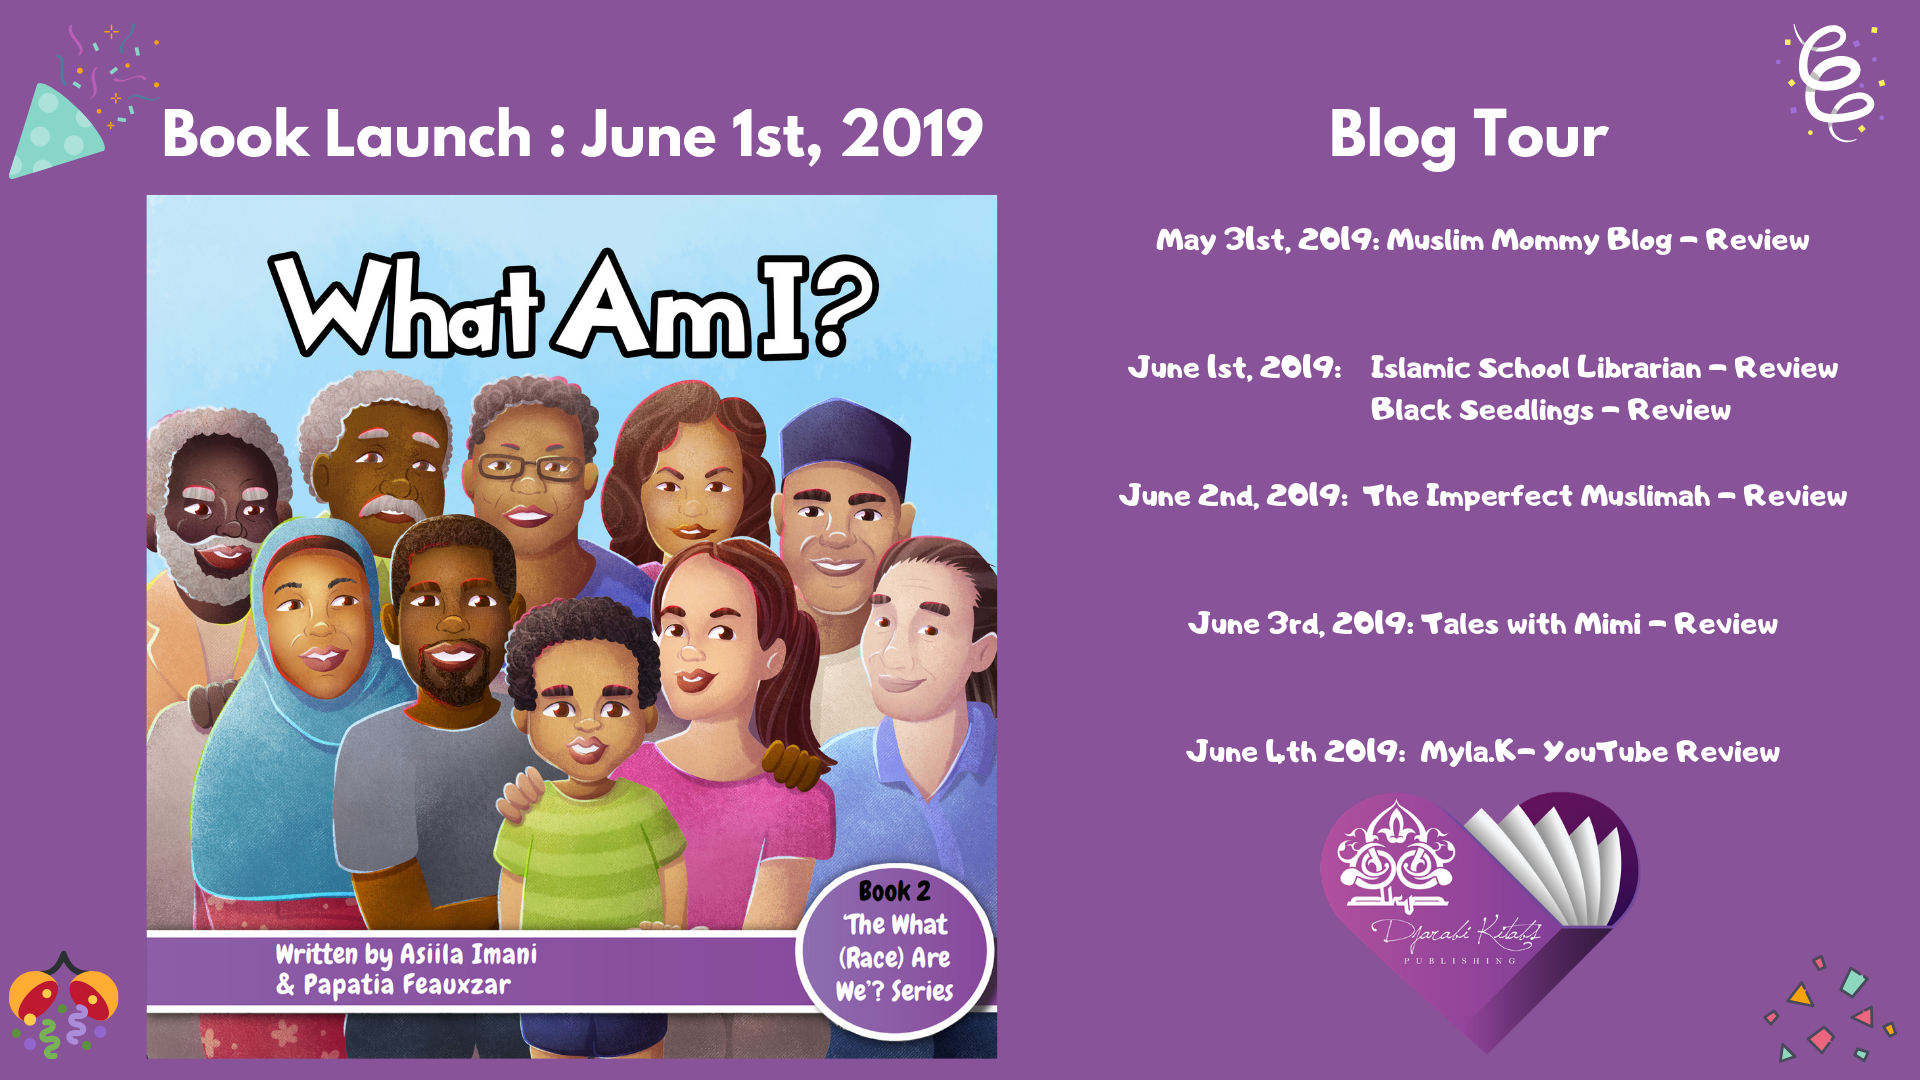 New Release! Book Launch and Blog Tour wami 2 final 5 20 19.png